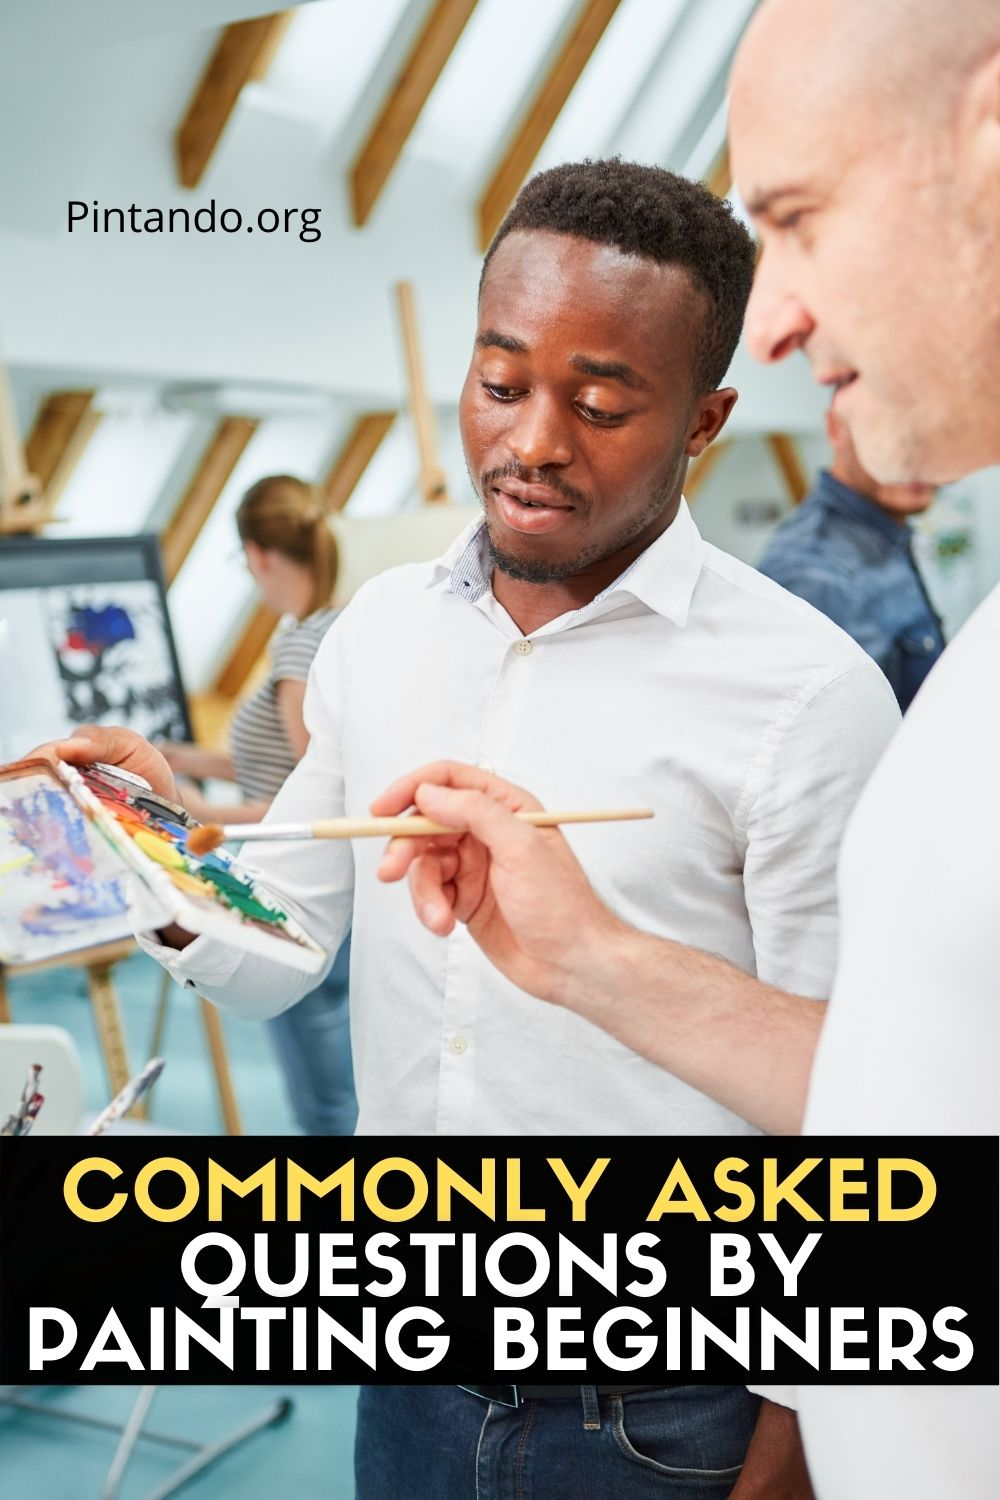 COMMONLY ASKED QUESTIONS BY PAINTING BEGINNERS